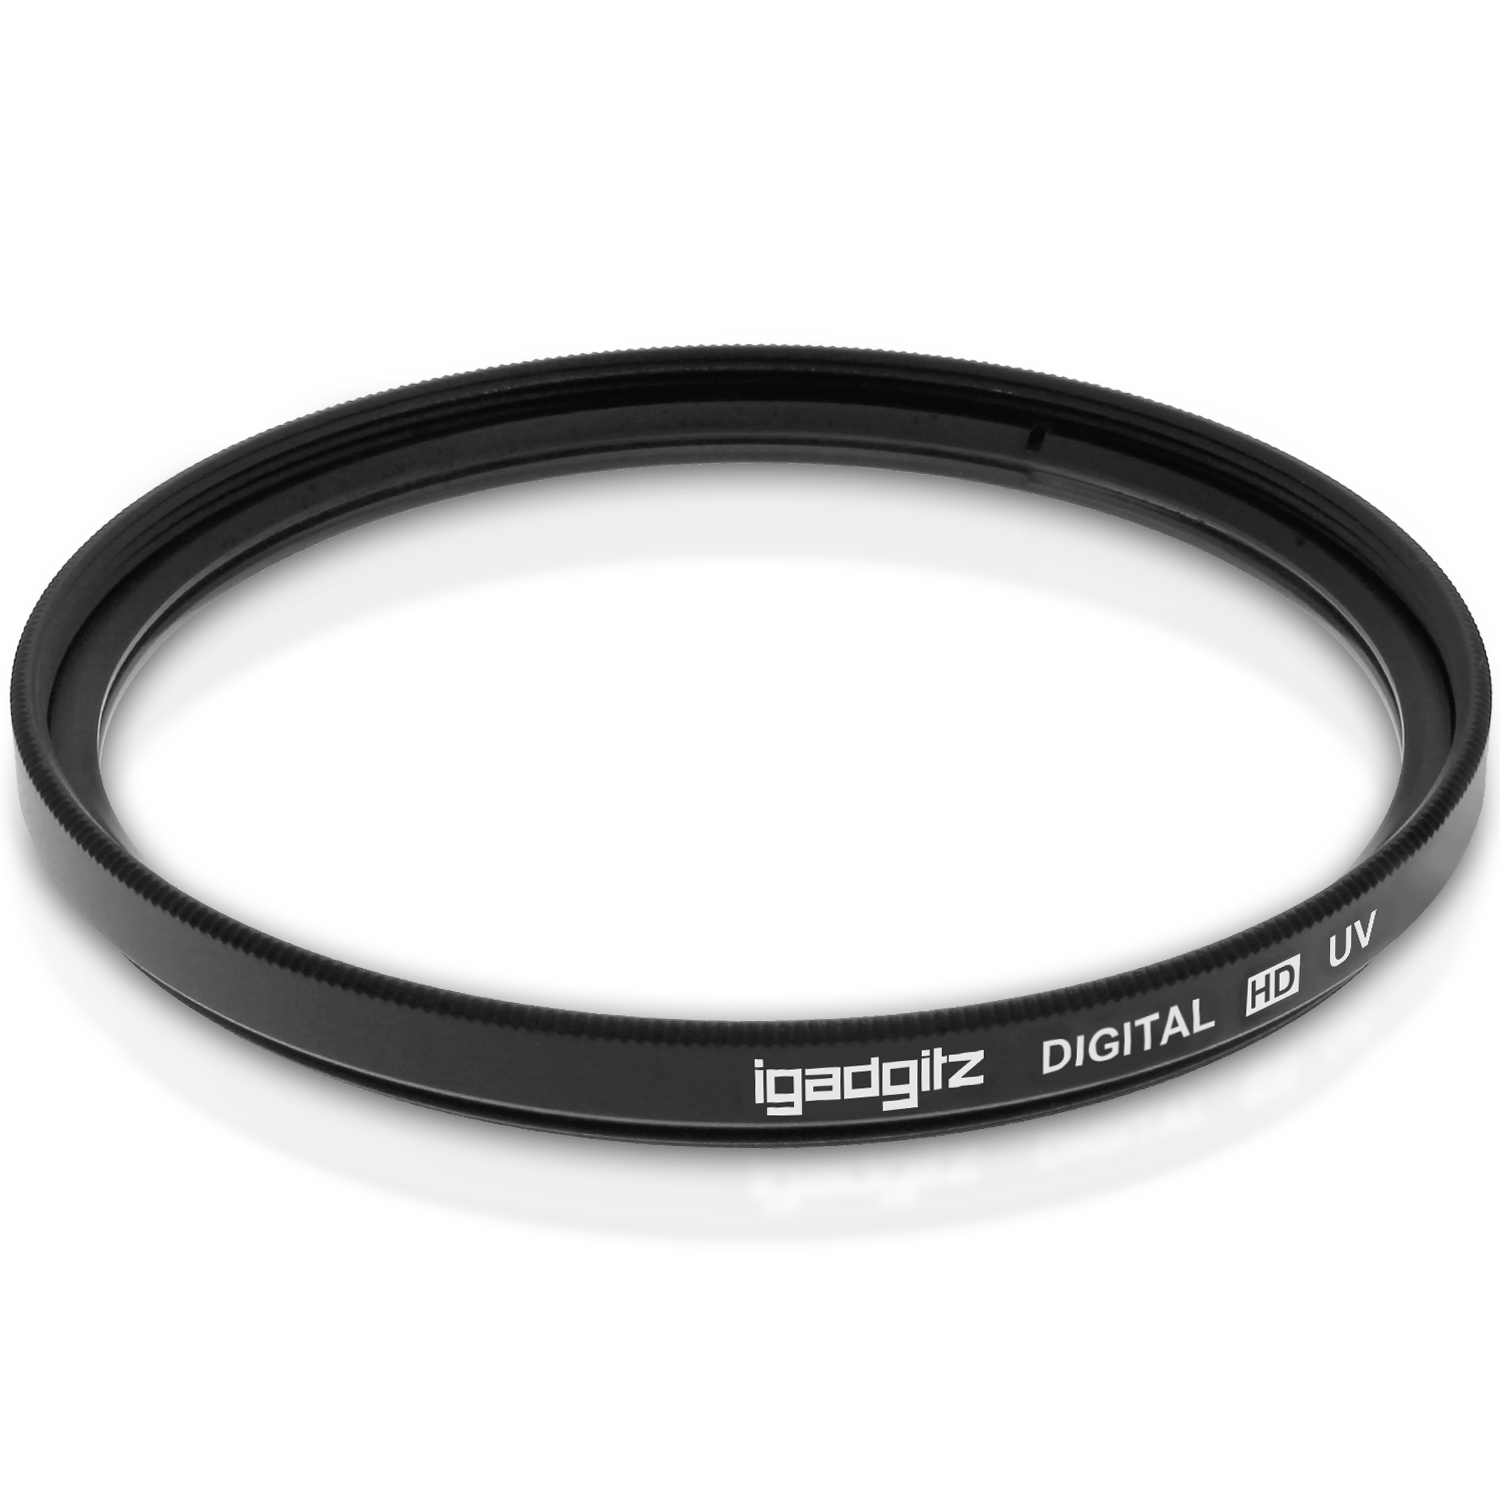 iGadgitz Xtra 67mm Glass Multi-Coated UV Lens Filter Protection for SLR & DSLR Cameras